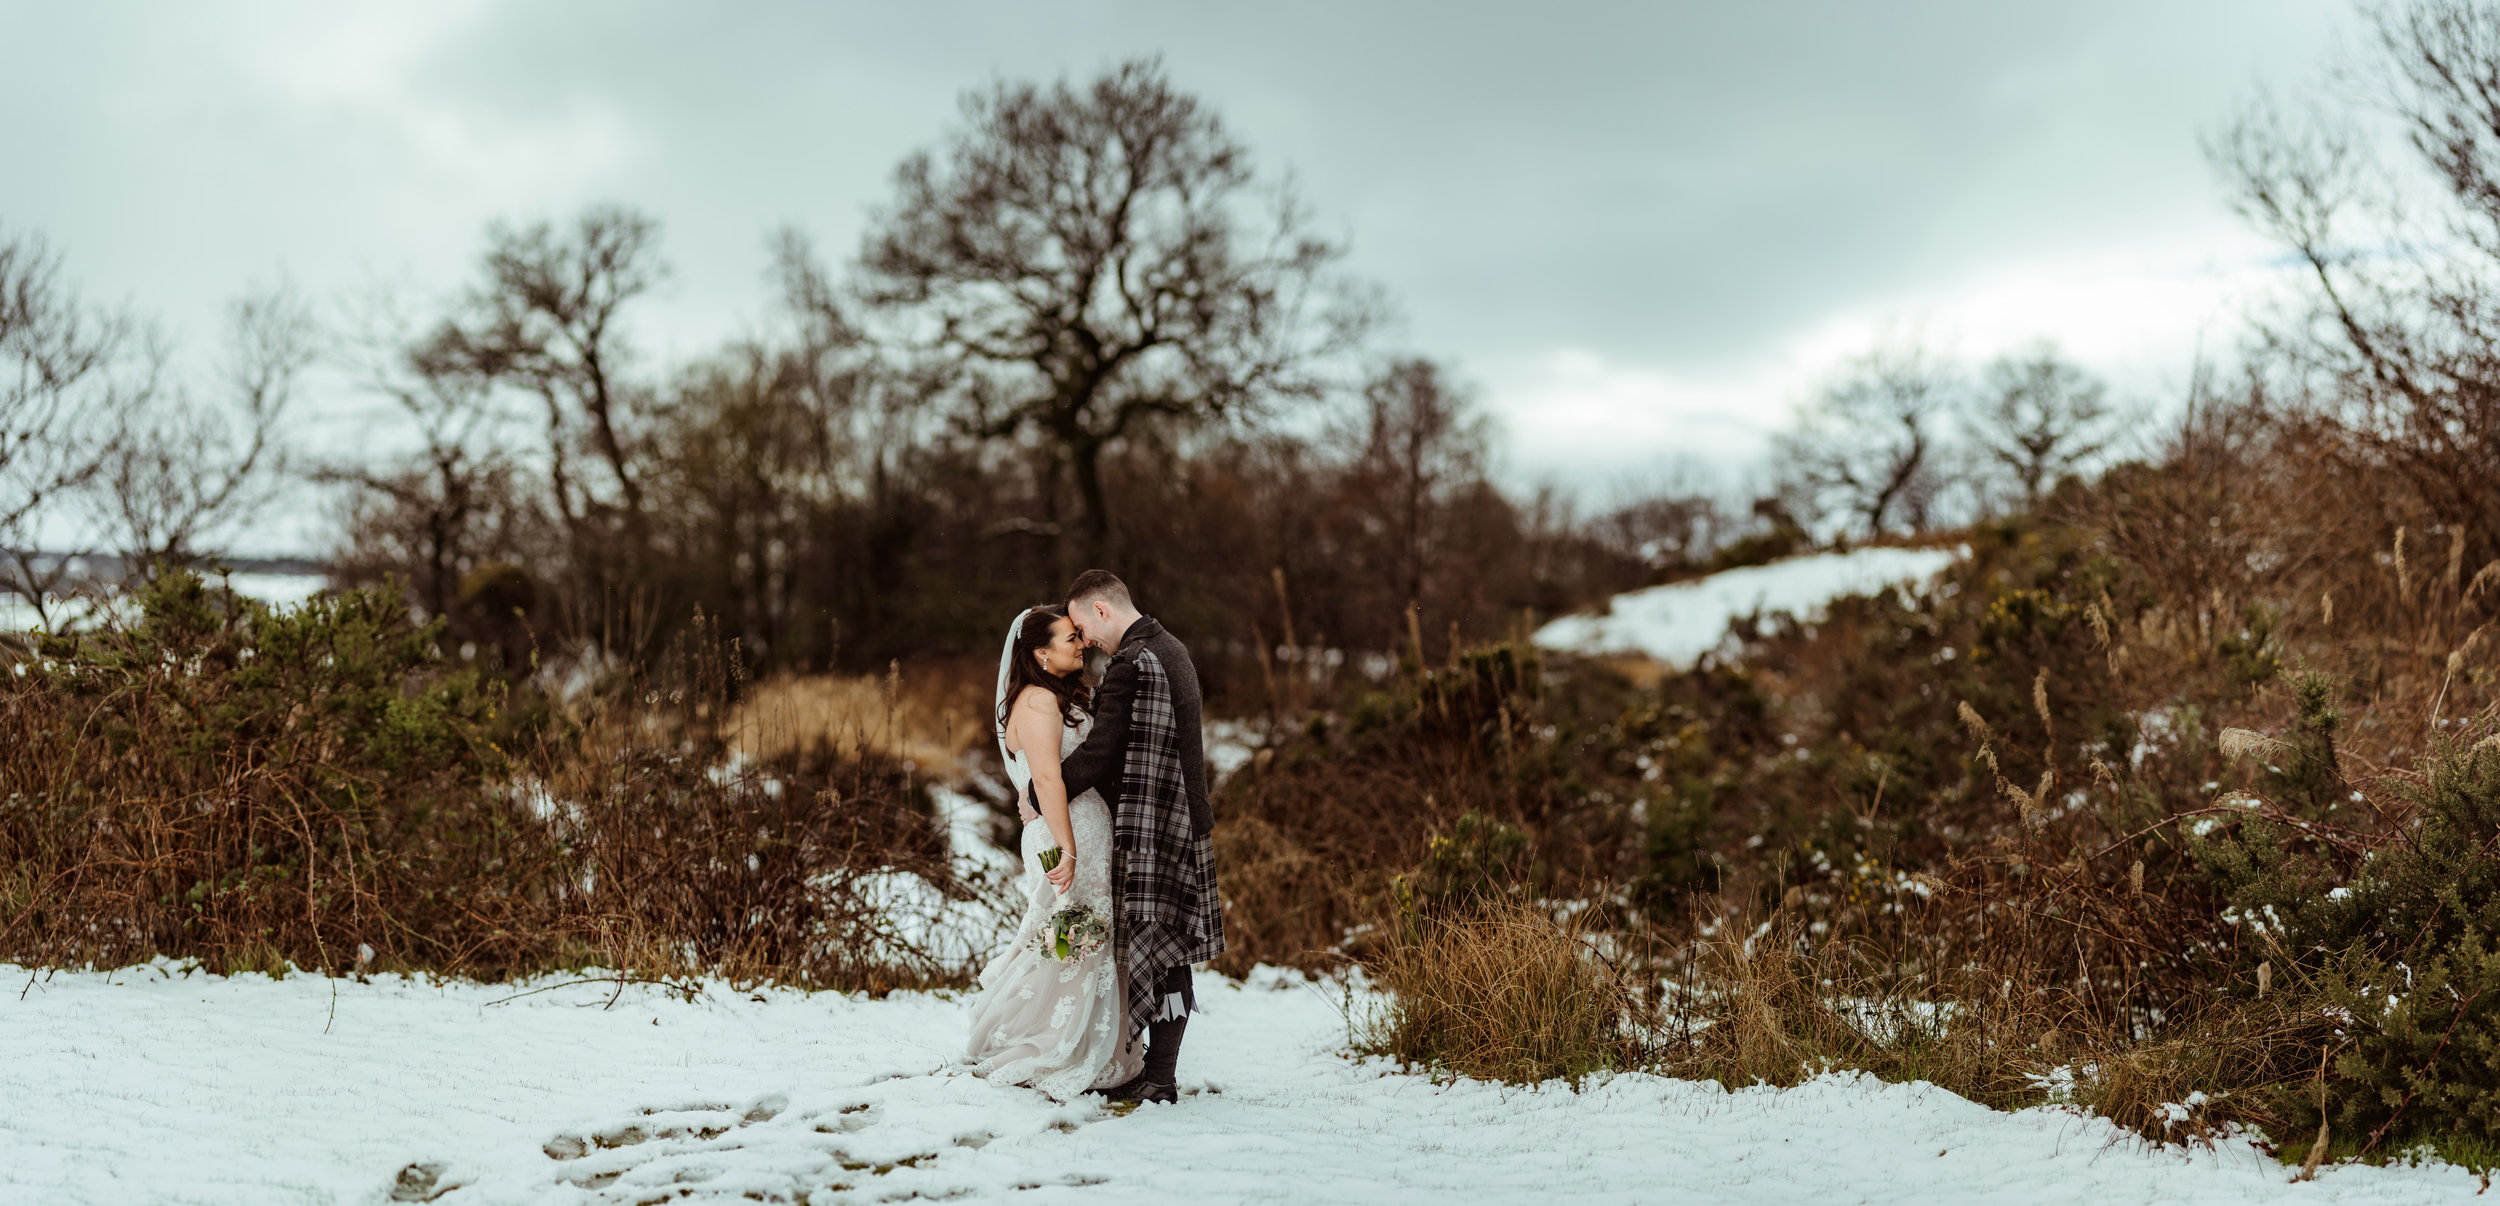 alternative-wedding-photography-glenskirlie-glasgow.jpg